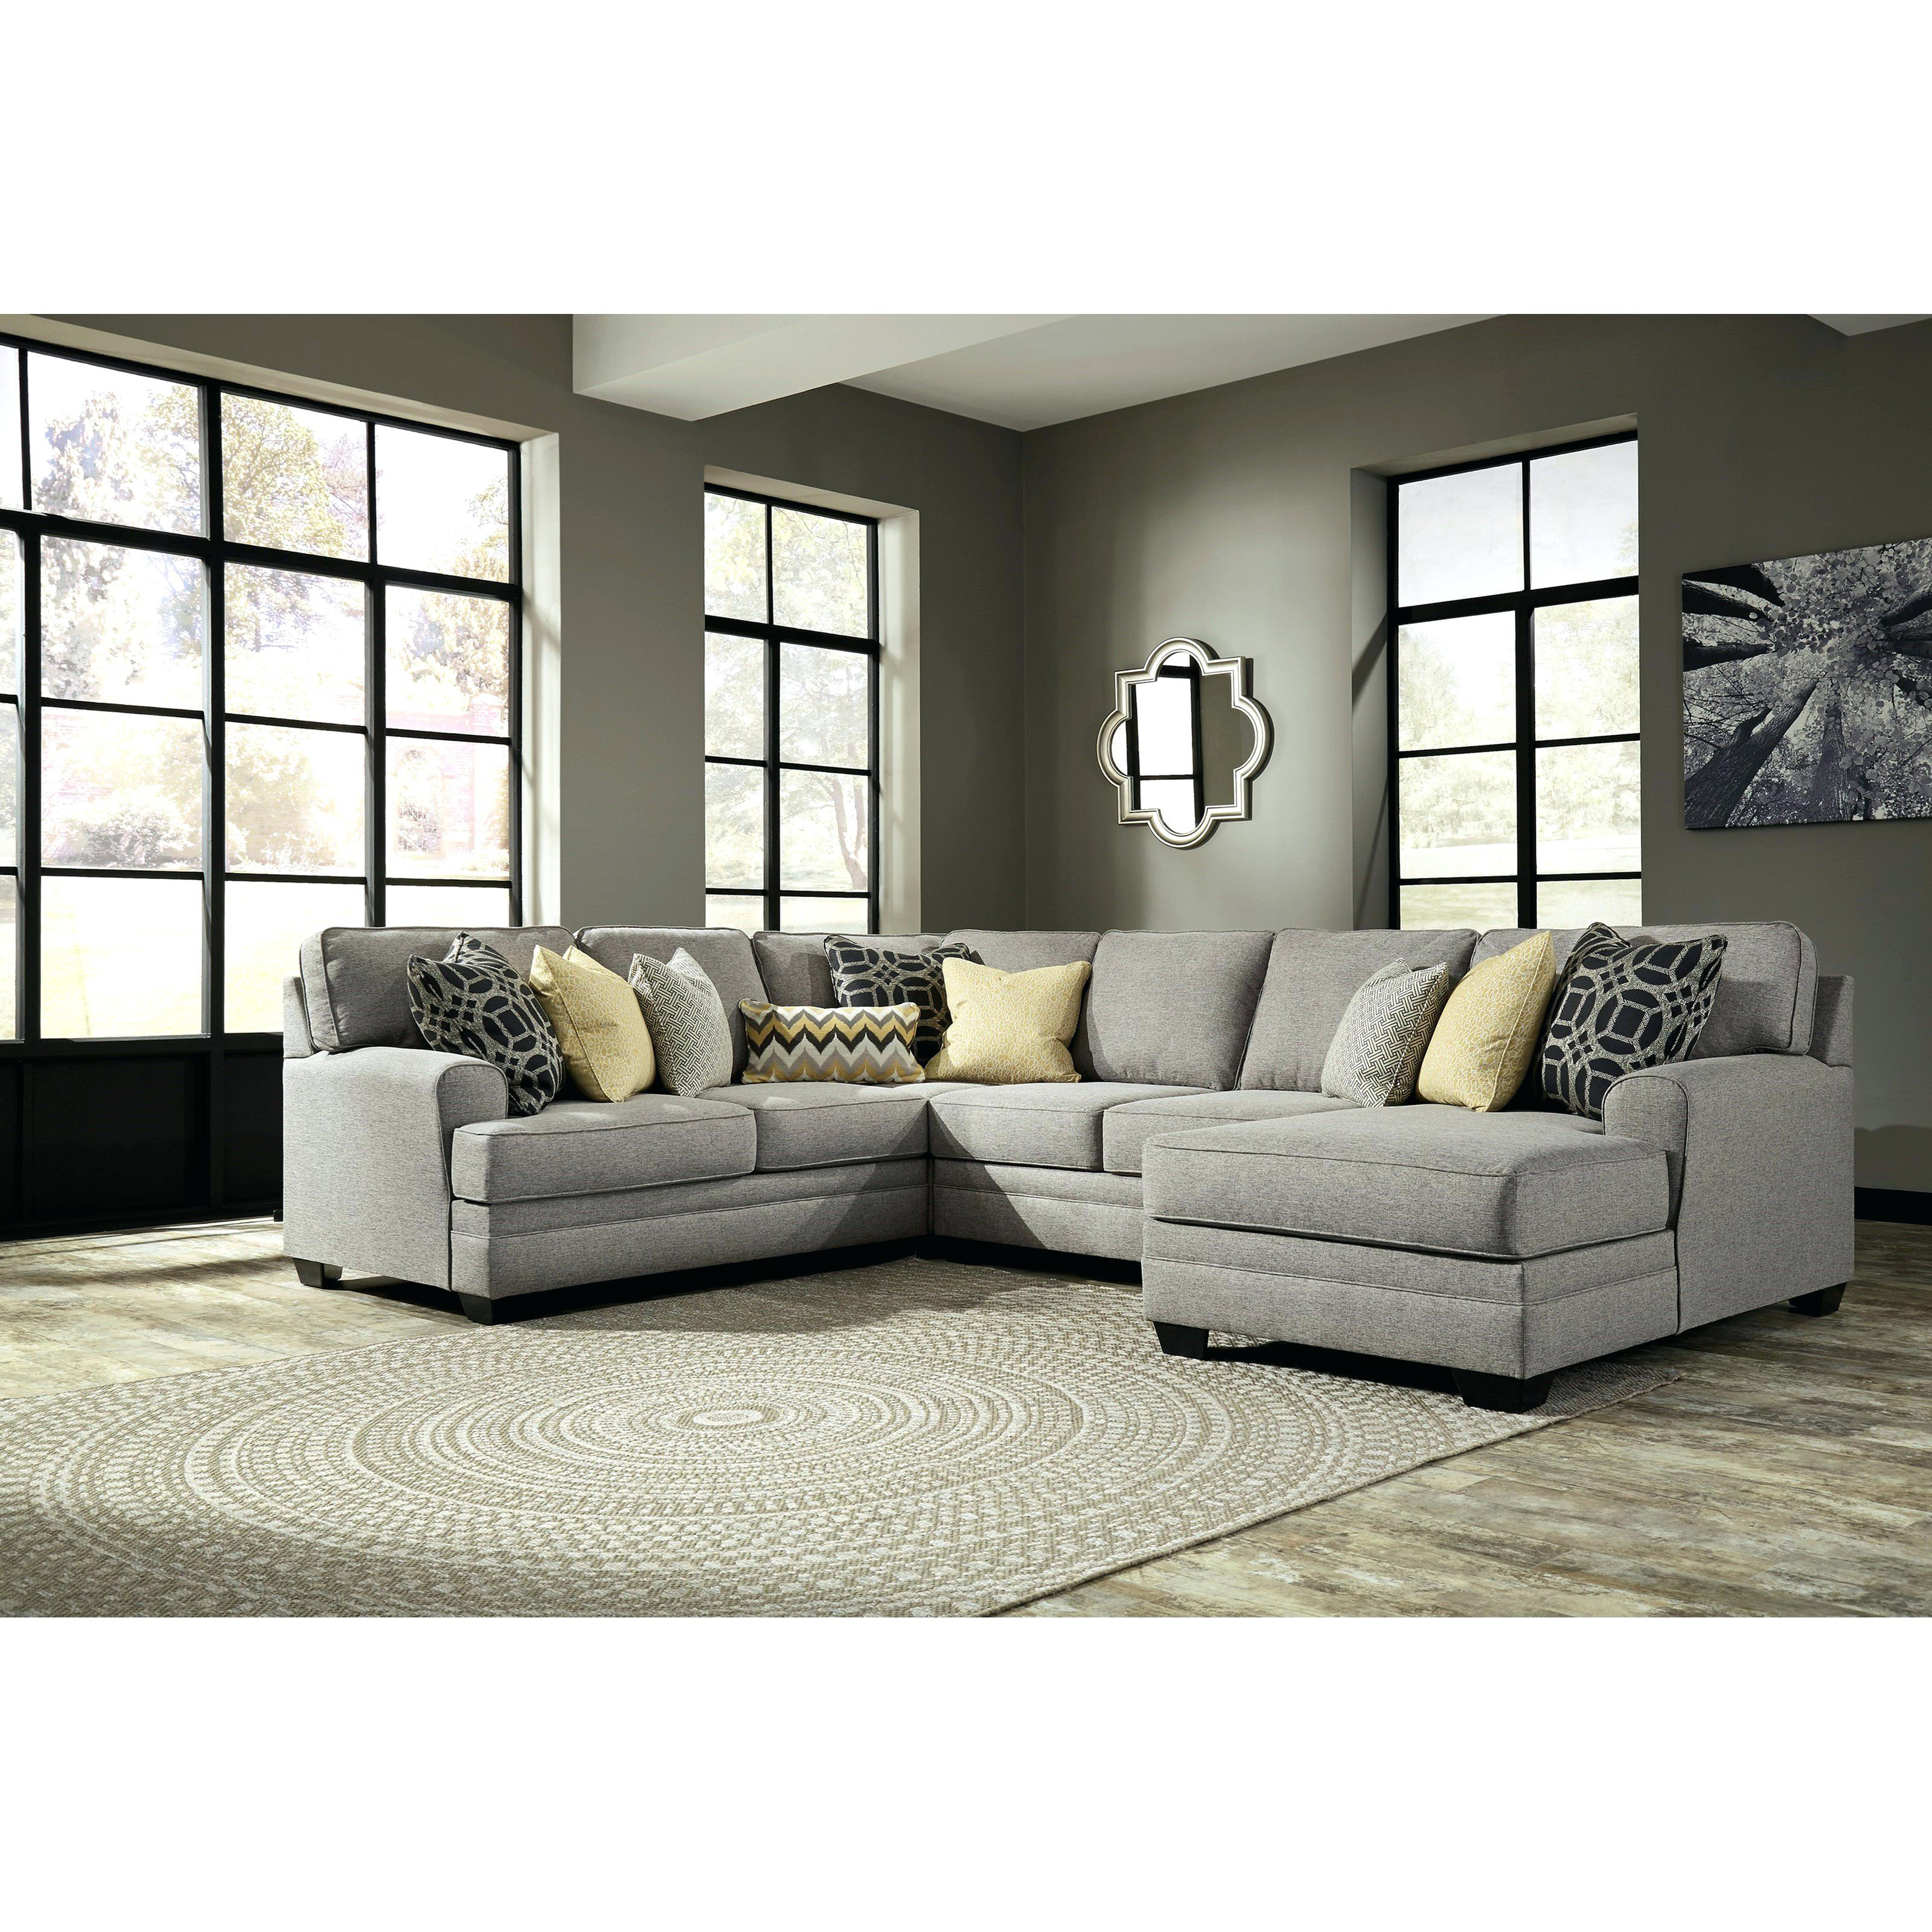 Alder 4 Piece Sectionals In Most Recent 4 Piece Sectional Couch – Formyouropinion (Gallery 18 of 20)